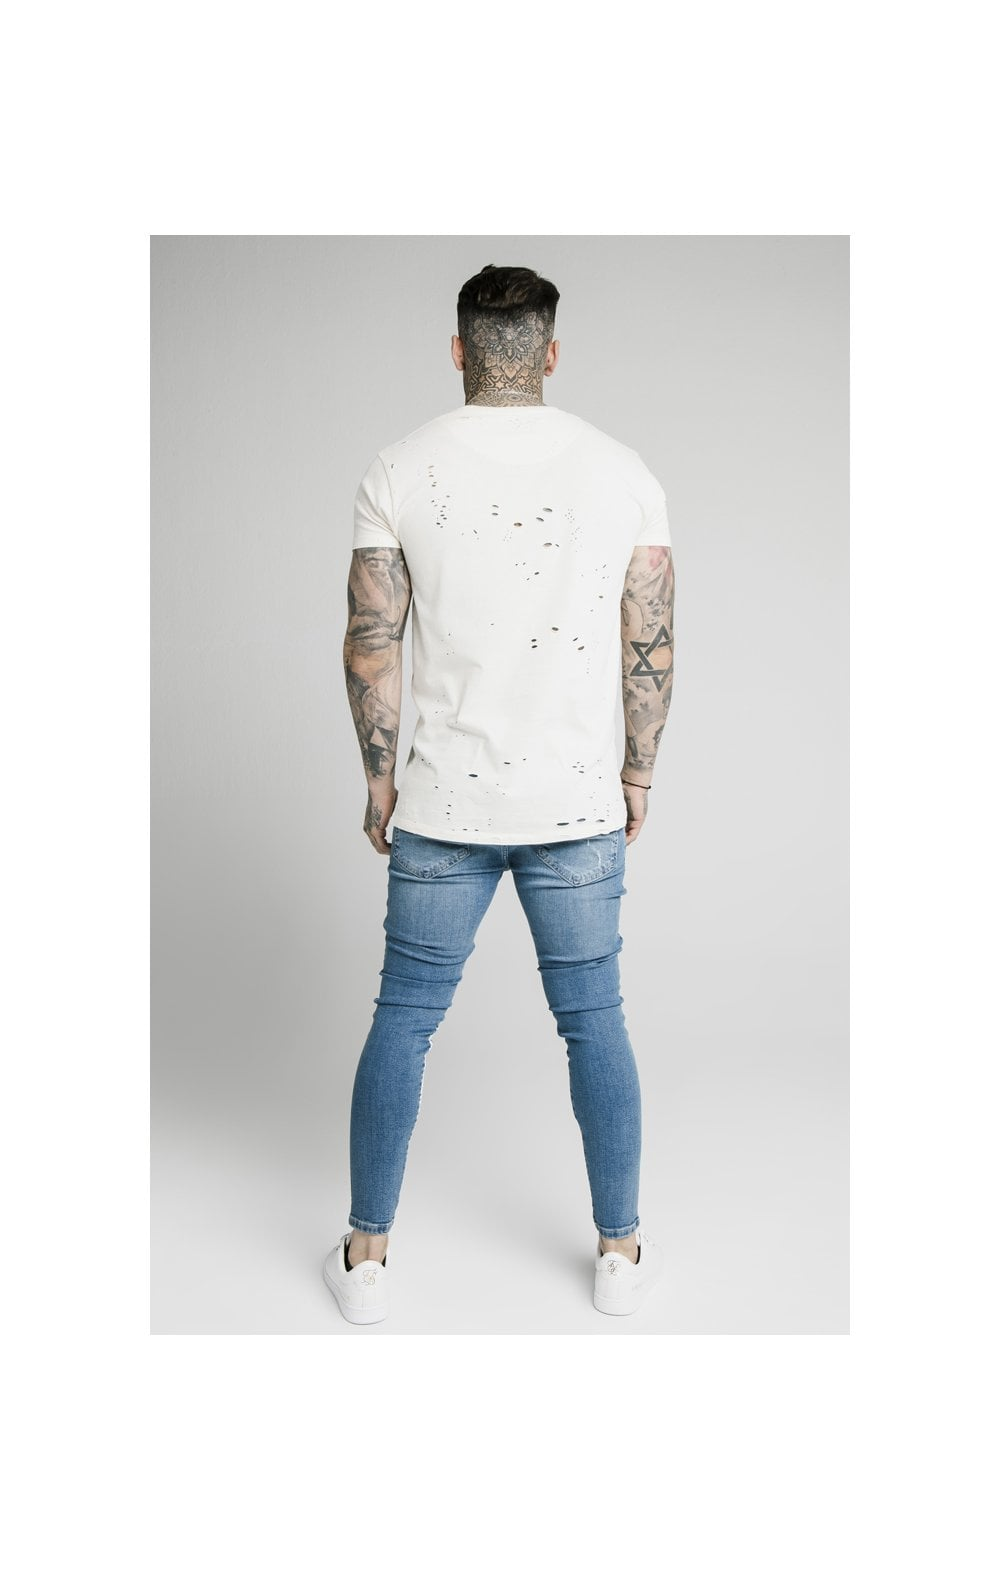 Load image into Gallery viewer, SikSilk Skinny Distressed Paint Stripe Denims - Midstone & White (5)